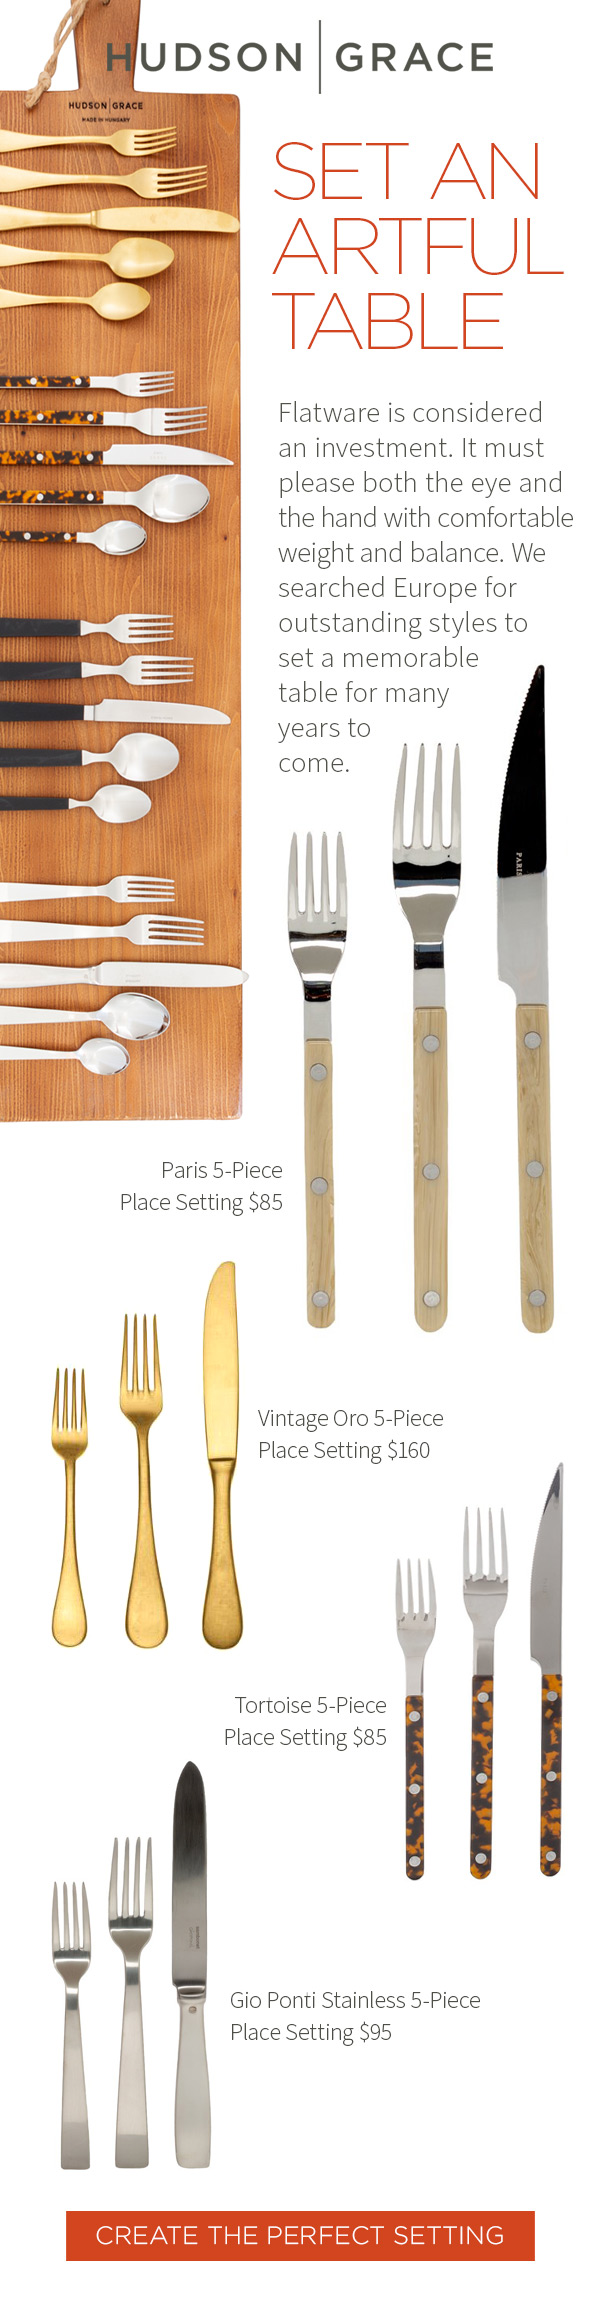 Set an artful table. Flatware is considered an investment. It must please both the eye and the hand with comfortable weight and balance. We searched Europe for outstanding styles to set a memorable table for many years to come. Paris 5-Piece Place Setting $85 . Vintage Oro 5-Piece Place Setting $160 .?Tortoise 5-Piece Place Setting $85 .?Gio Ponti Stainless 5-Piece Place Setting $95 .?CREATE THE PERFECT SETTING.